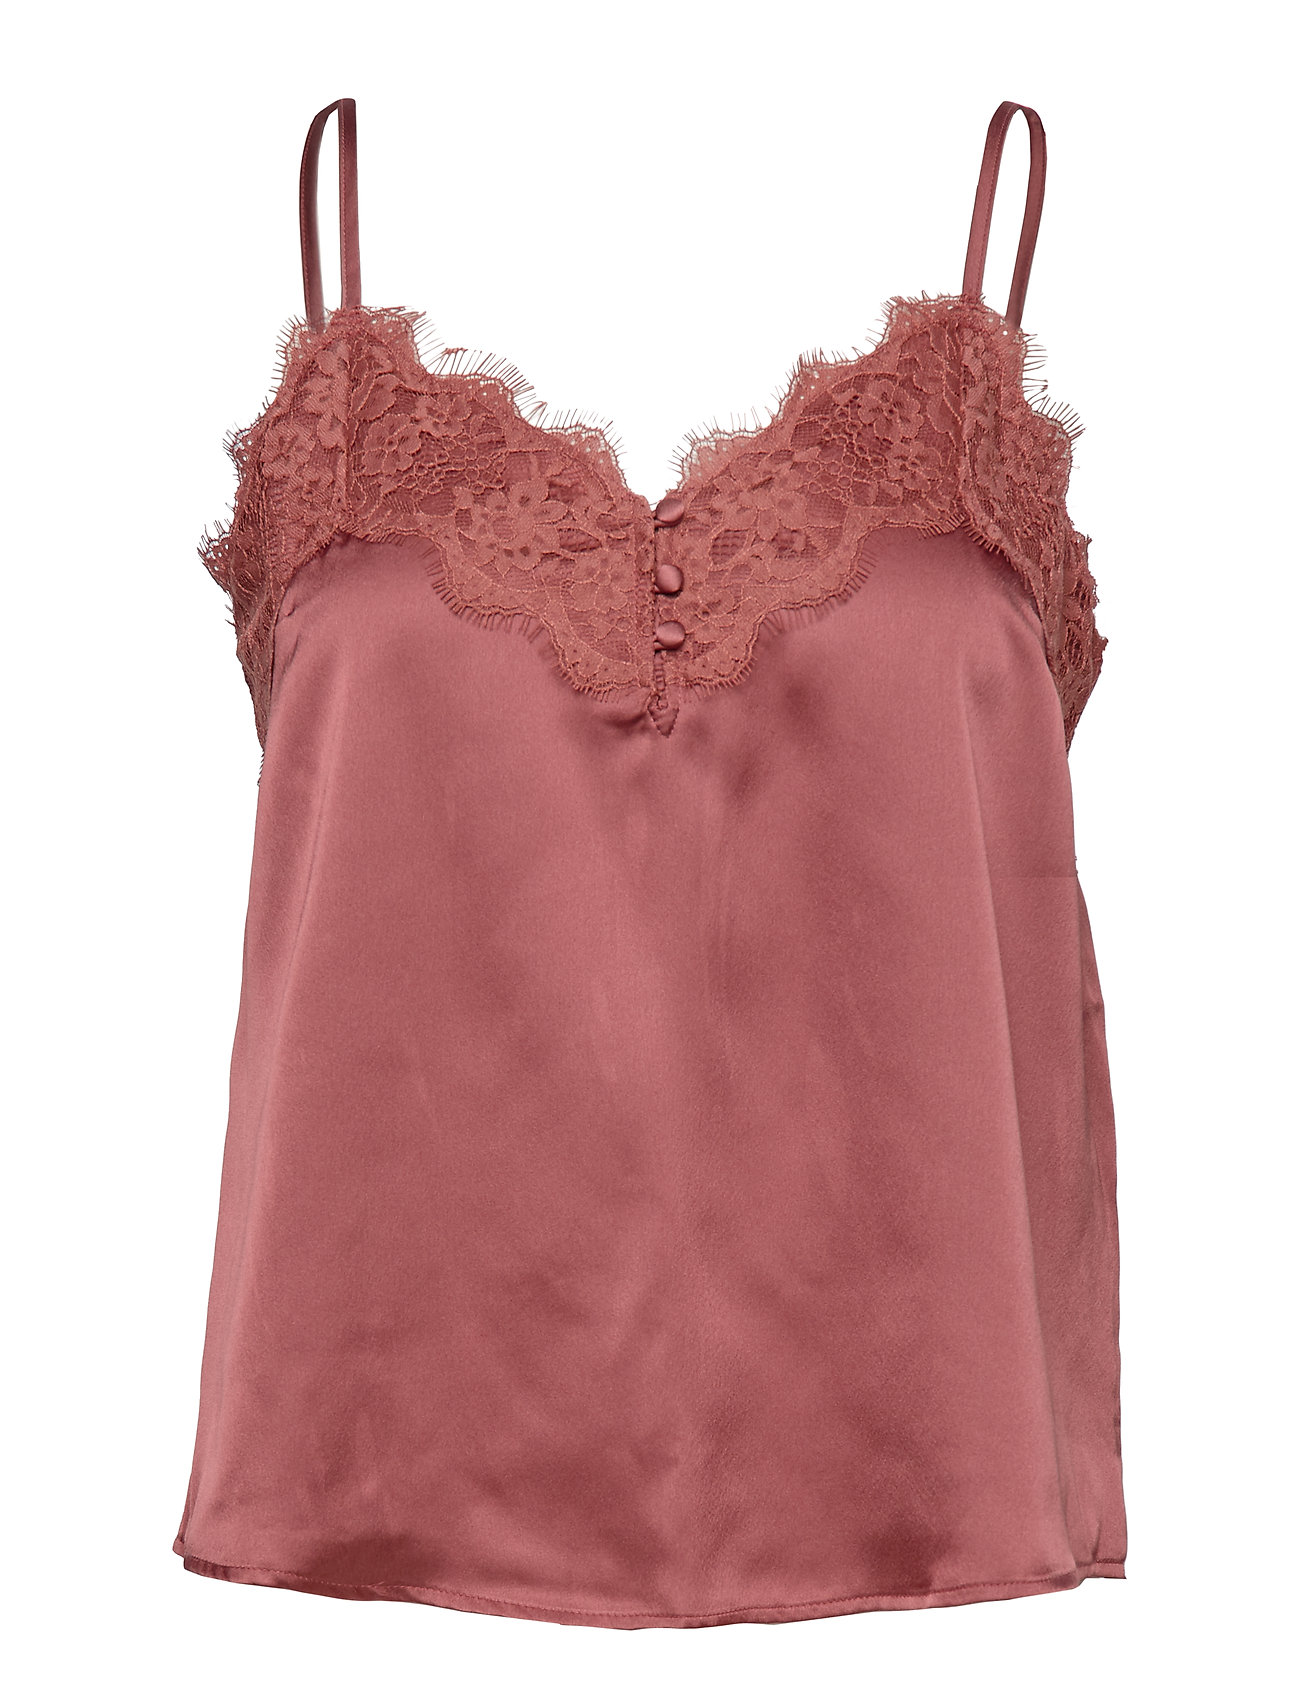 Abercrombie & Fitch Lace Cami - LIGHT BROWN DD